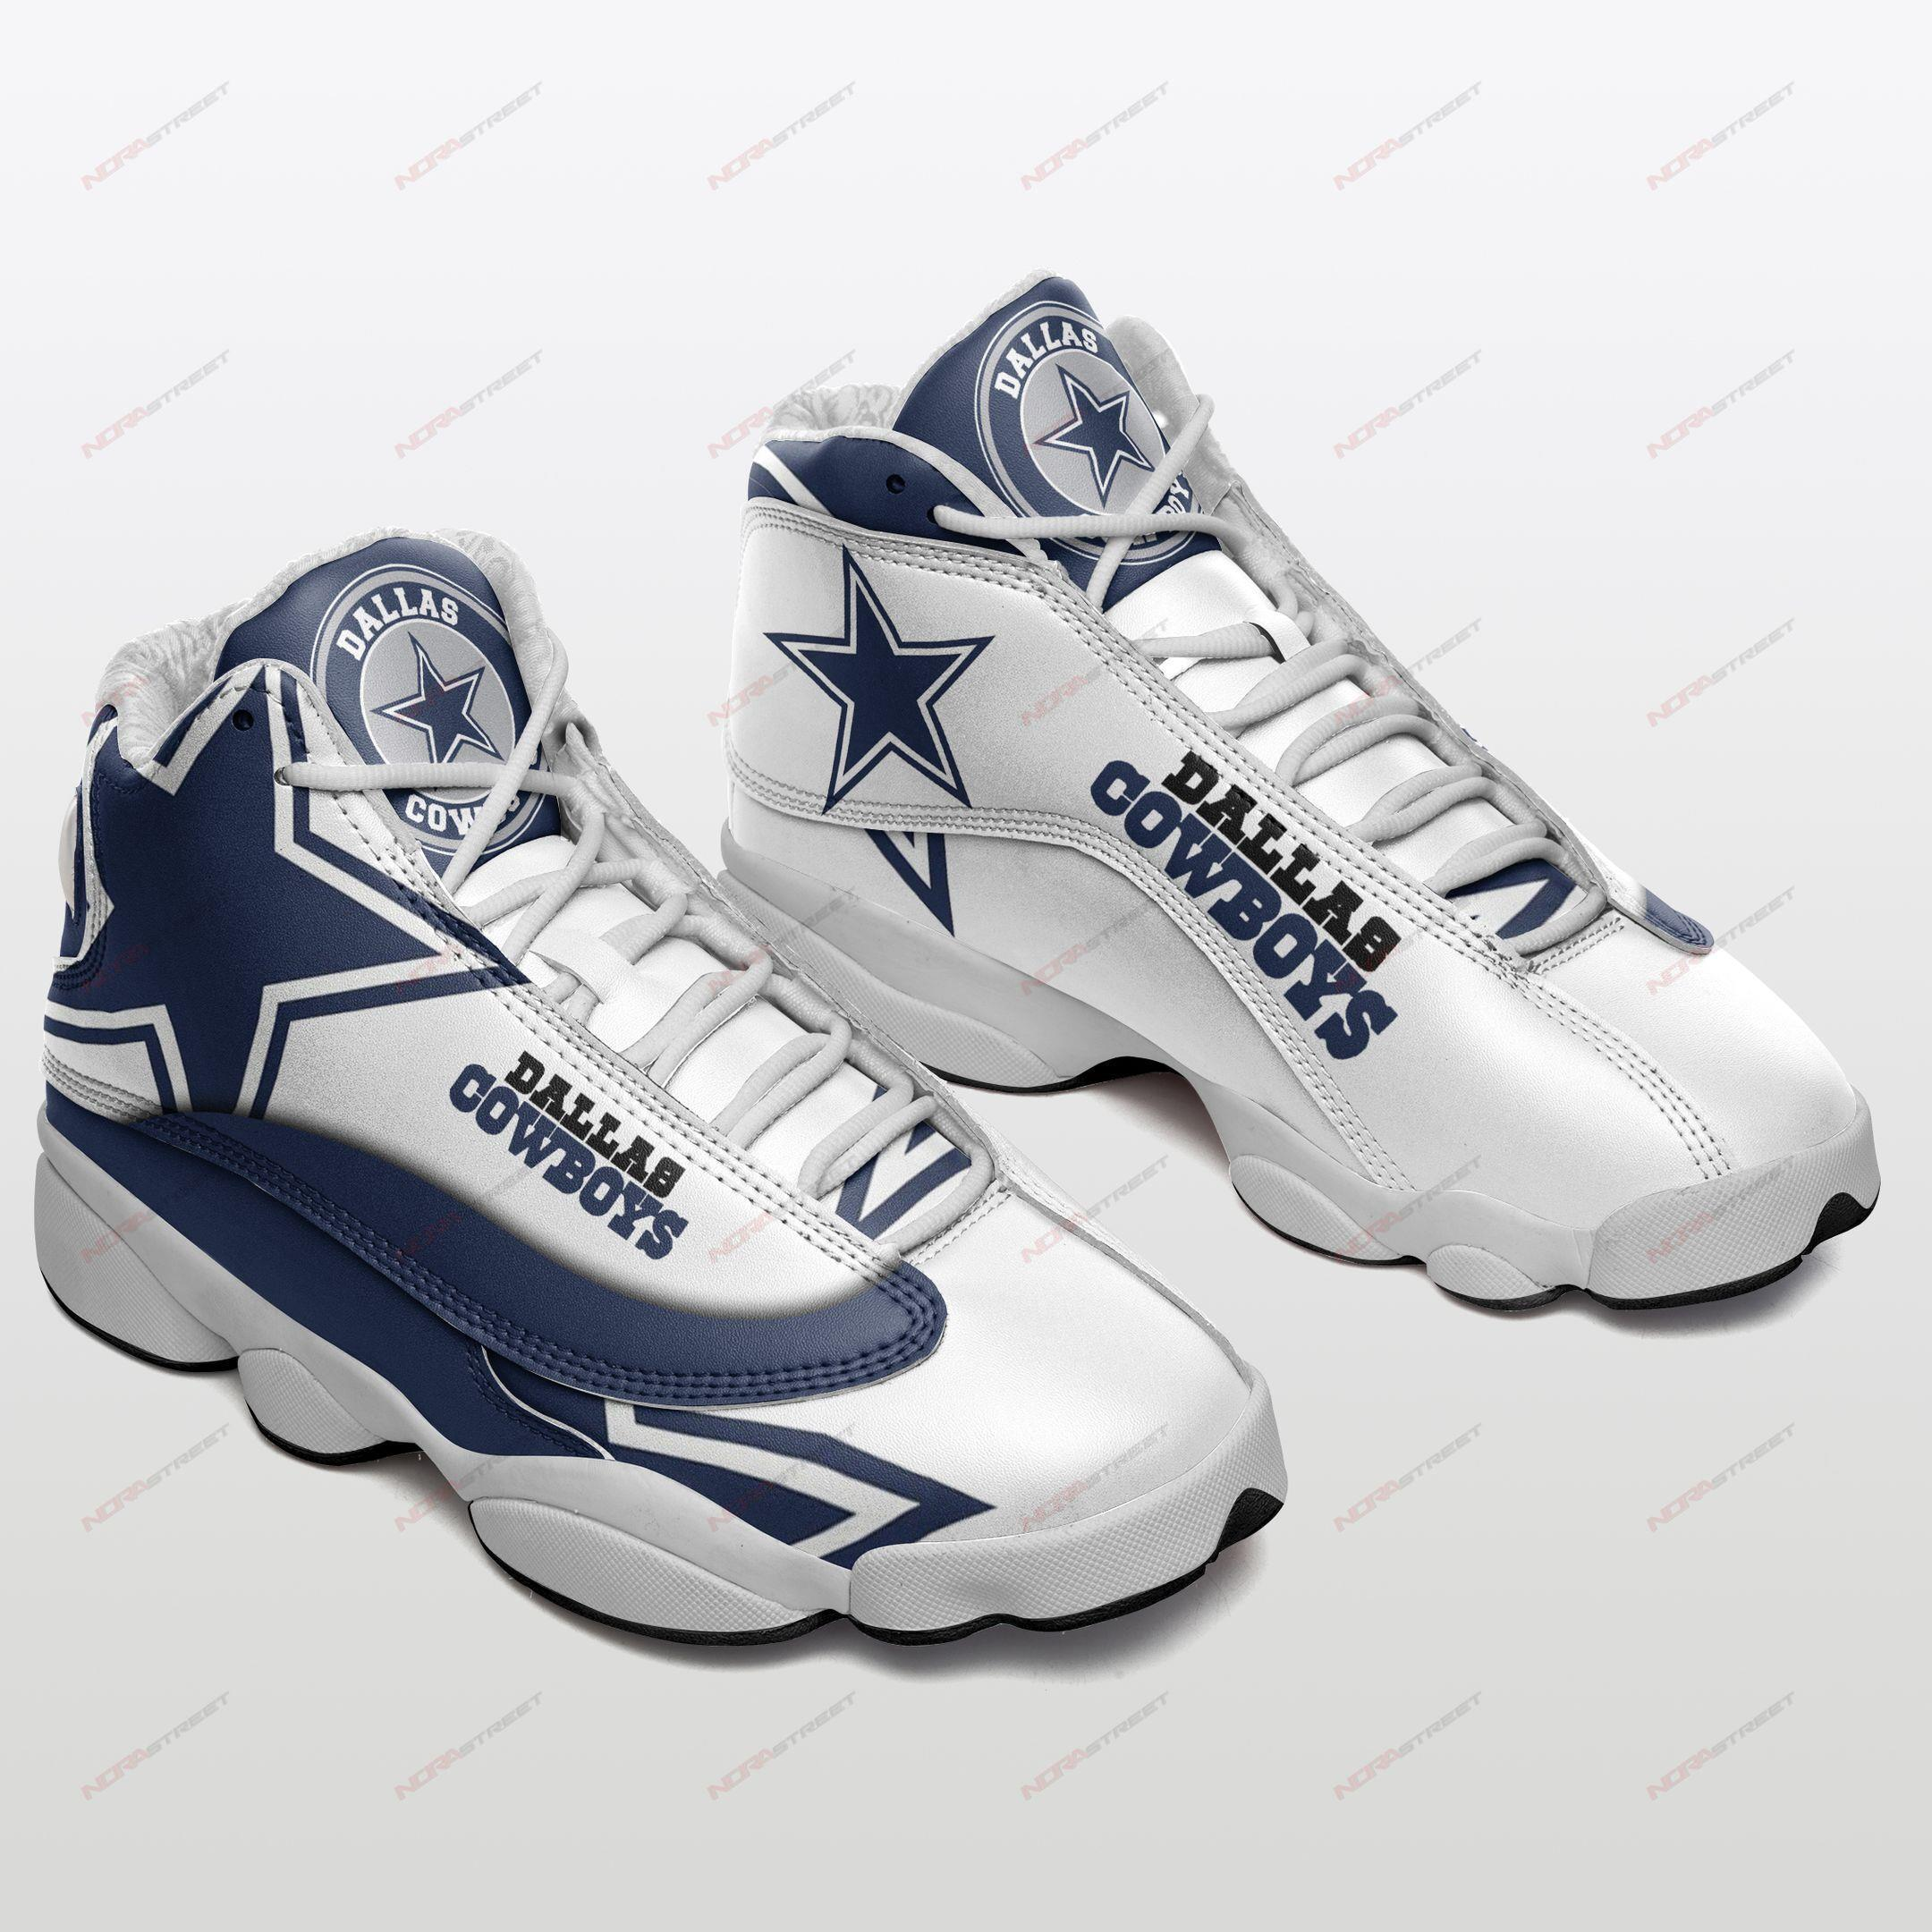 Dallas Cowboys Air Jordan 13 Sneakers Sport Shoes